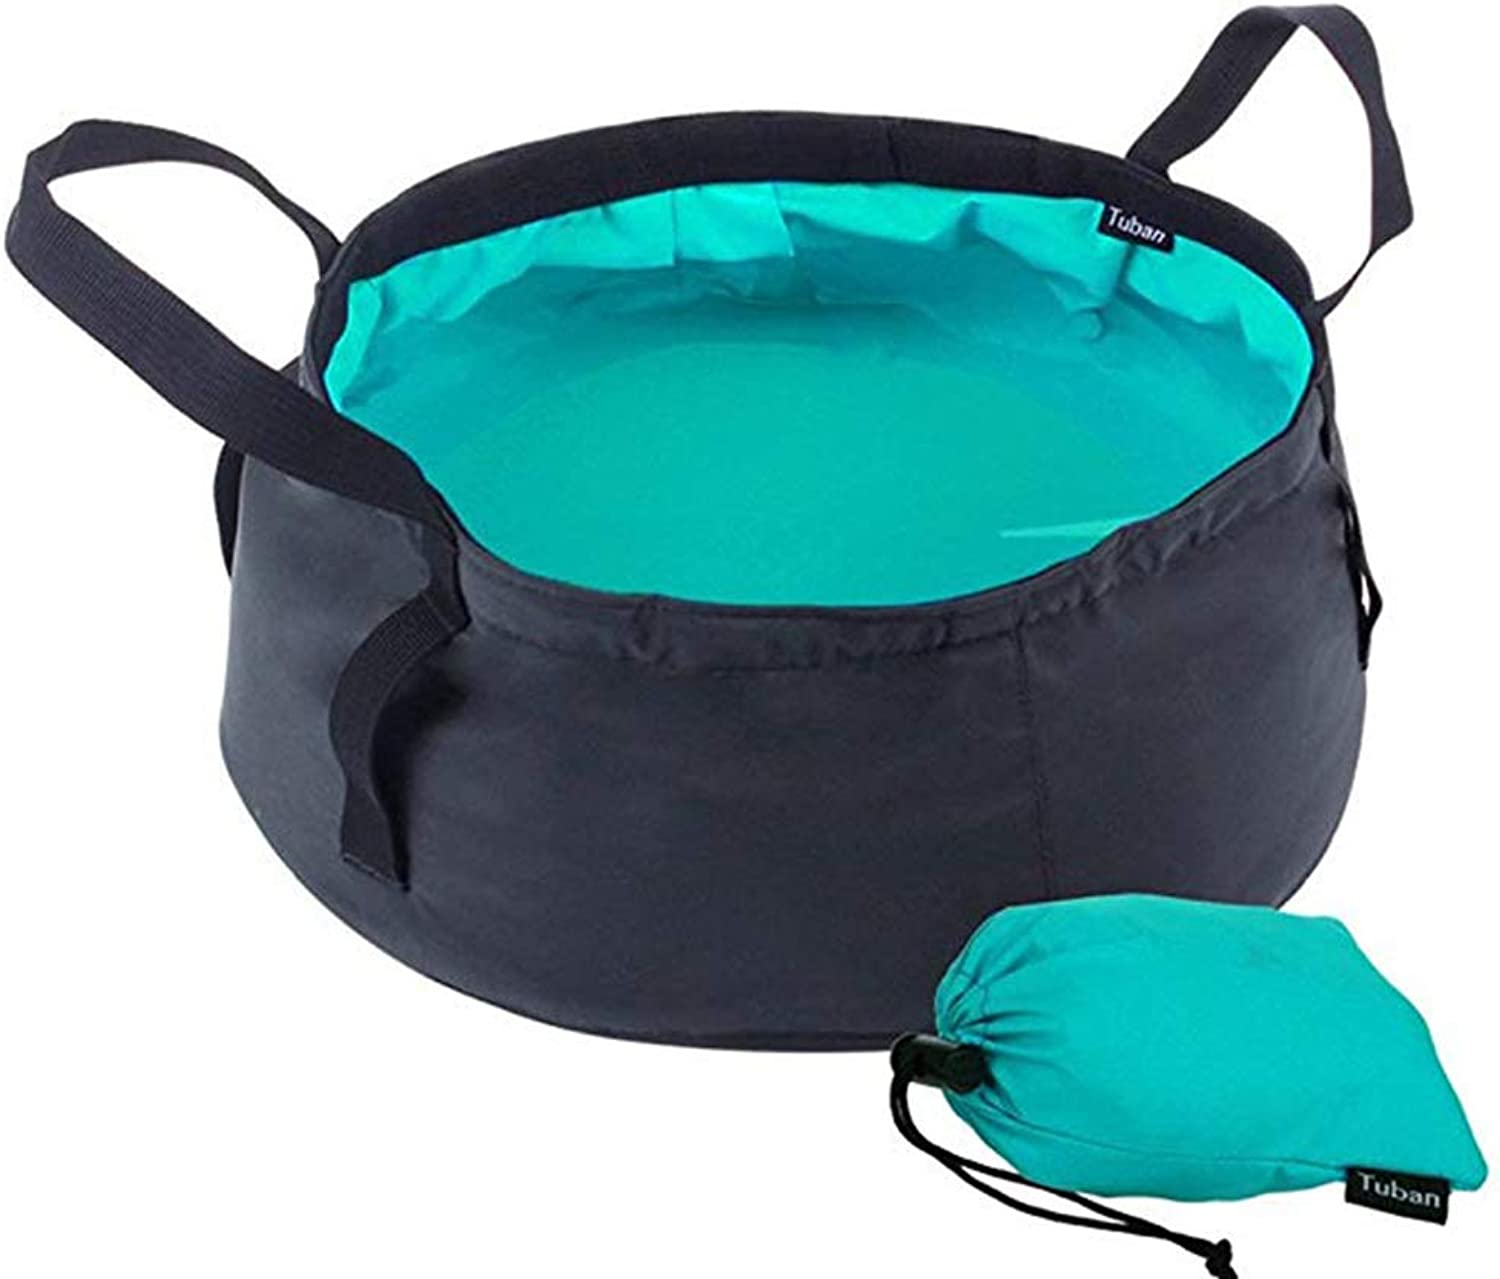 Bycws Collapsible Wash Basin, Folding Bucket Portable Tub Washtub Oxford Water Sink Container Ultralight Compact Waterproof Dishes Camping Picnic Fishing Hiking Outdoor Travel 8.5L,Green